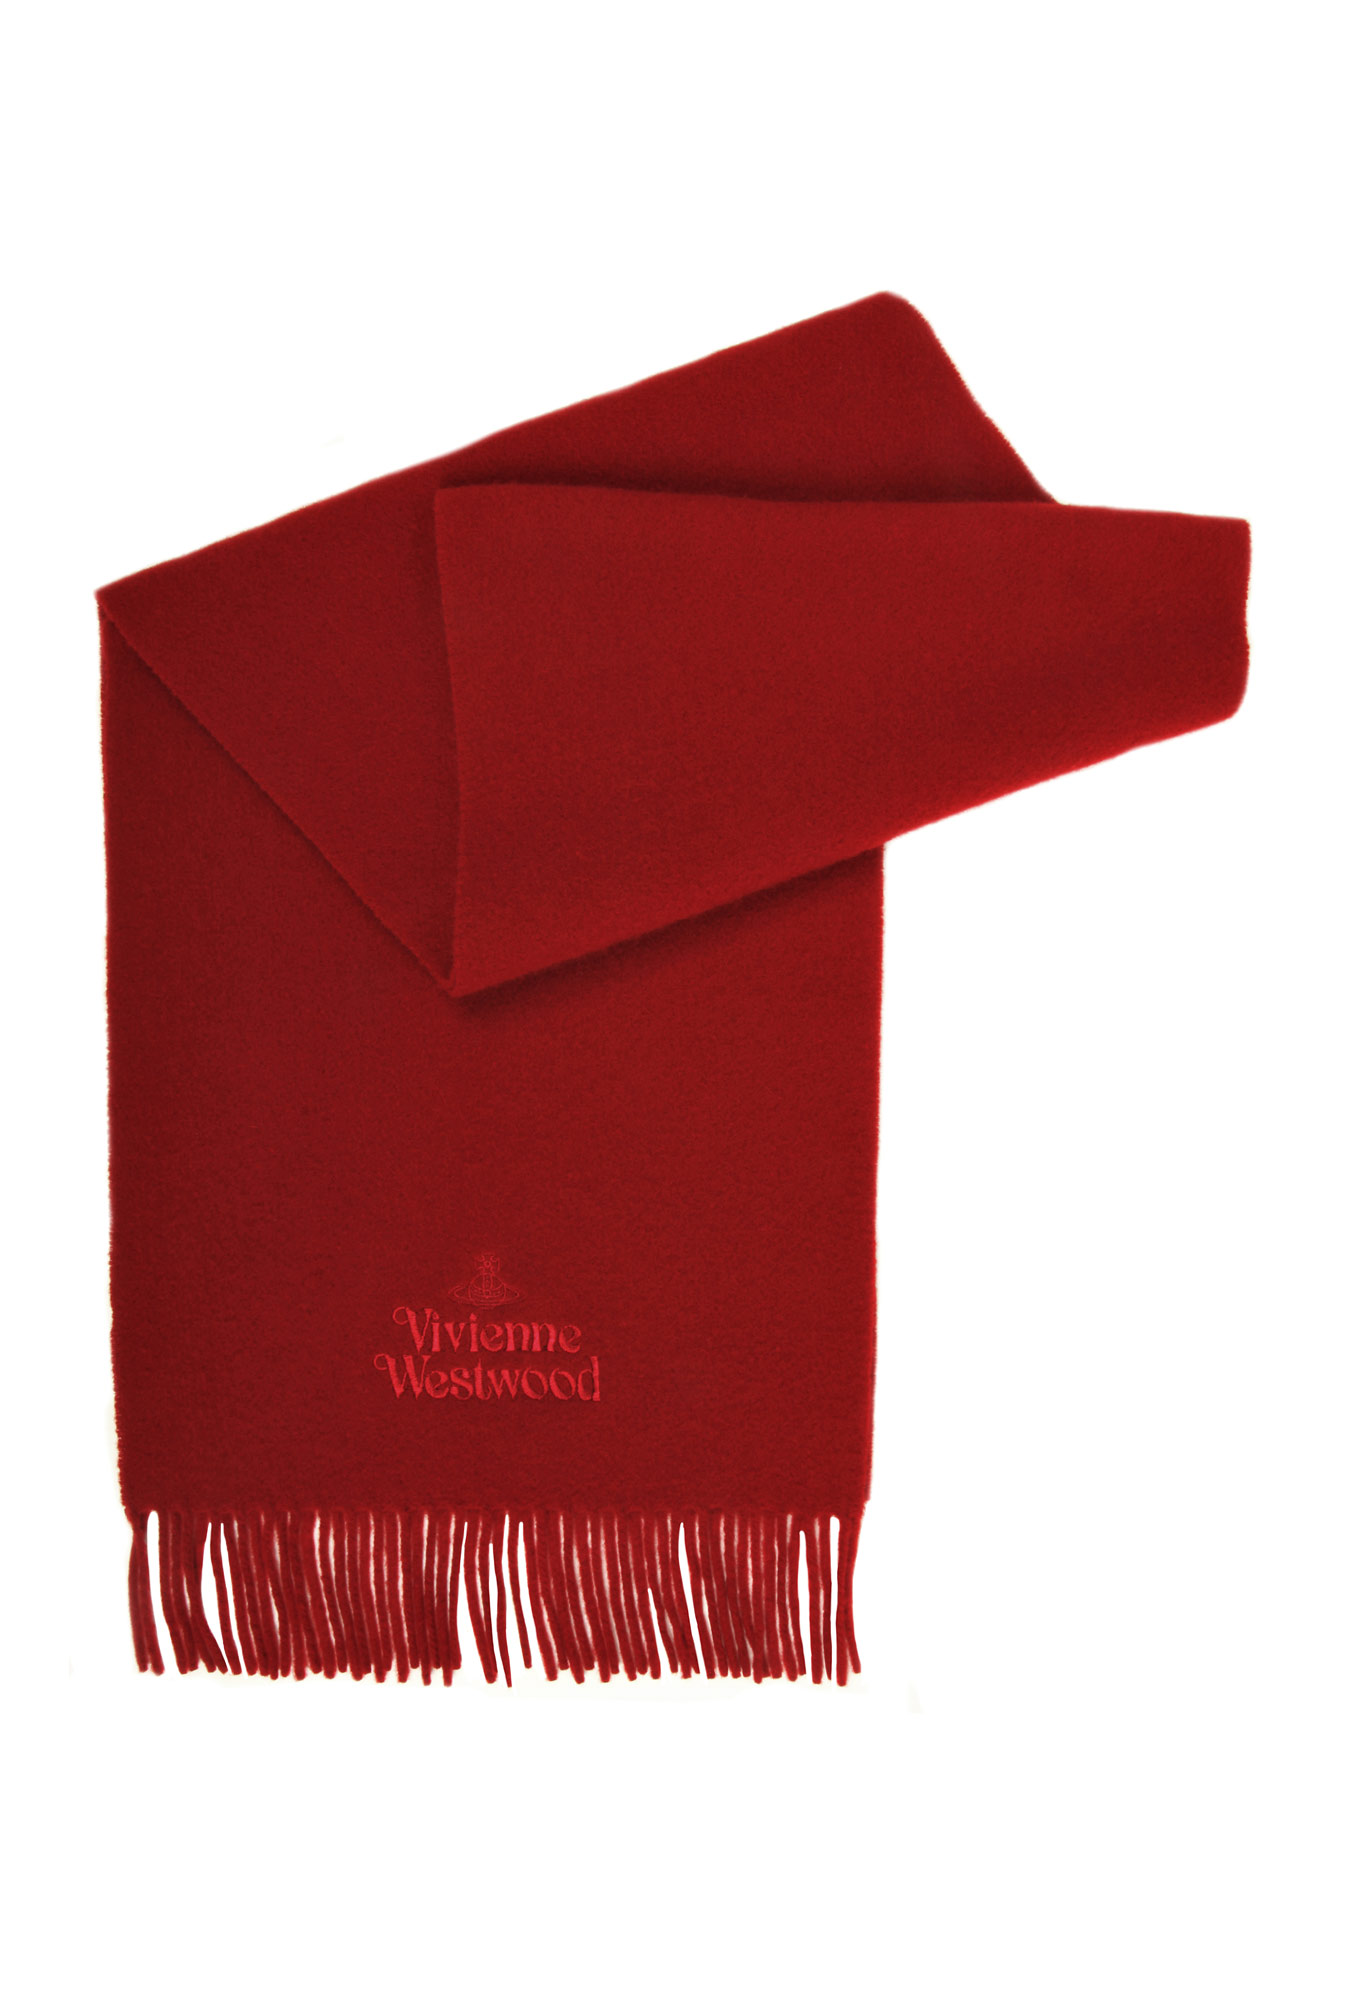 Gifts under £50 for him: Vivienne Westwood red scarf